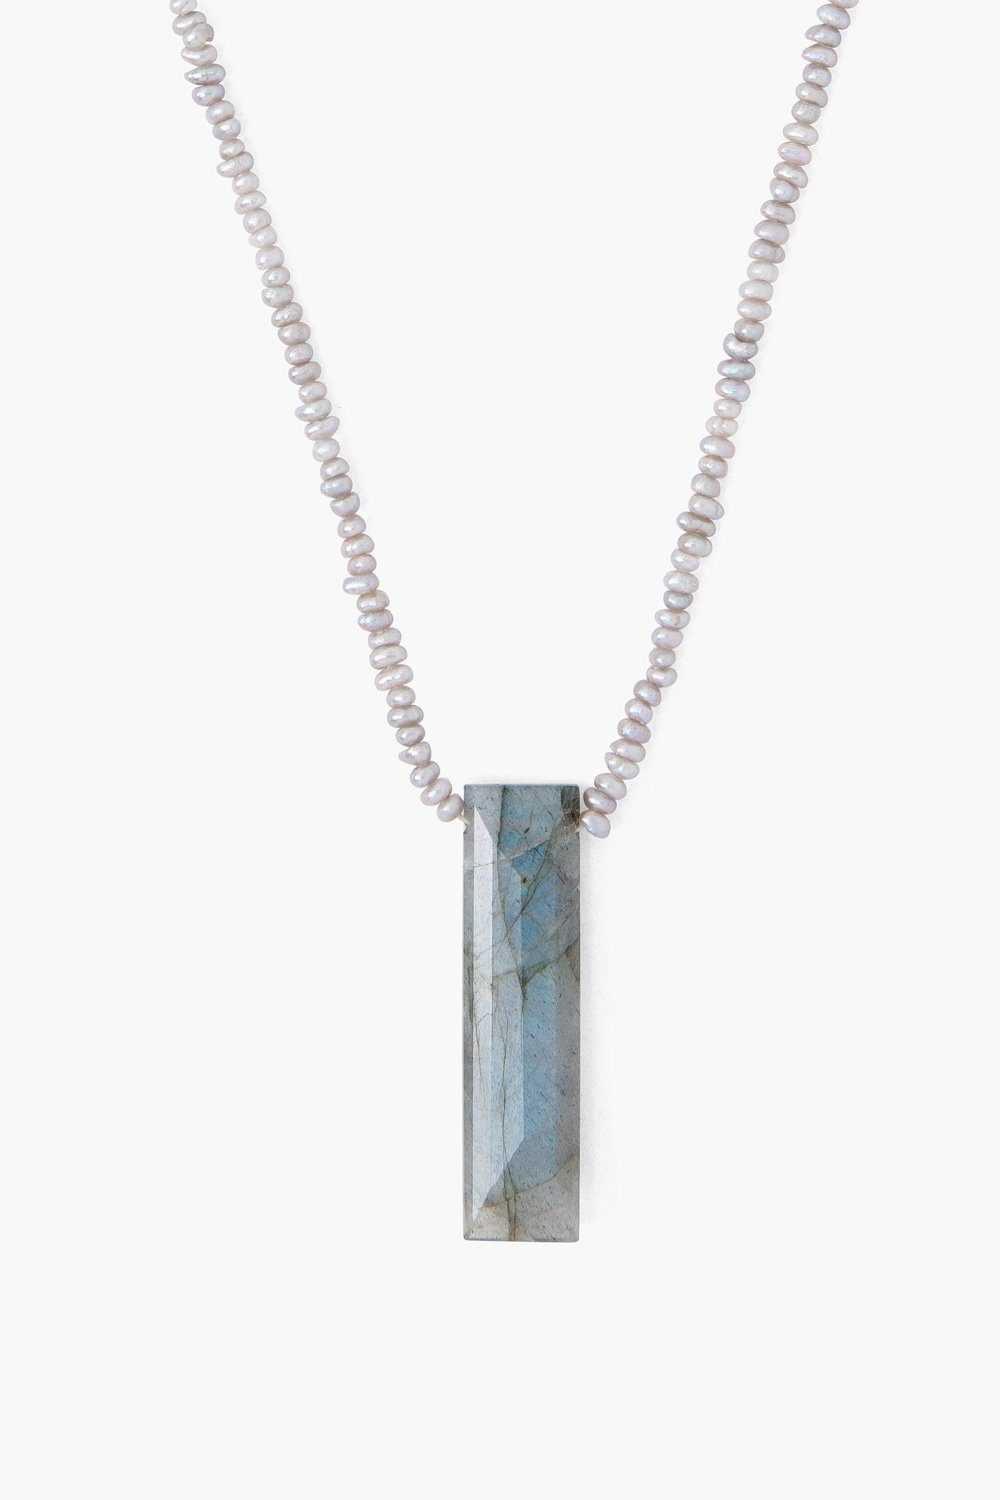 Labradorite Healing Stone Column Necklace